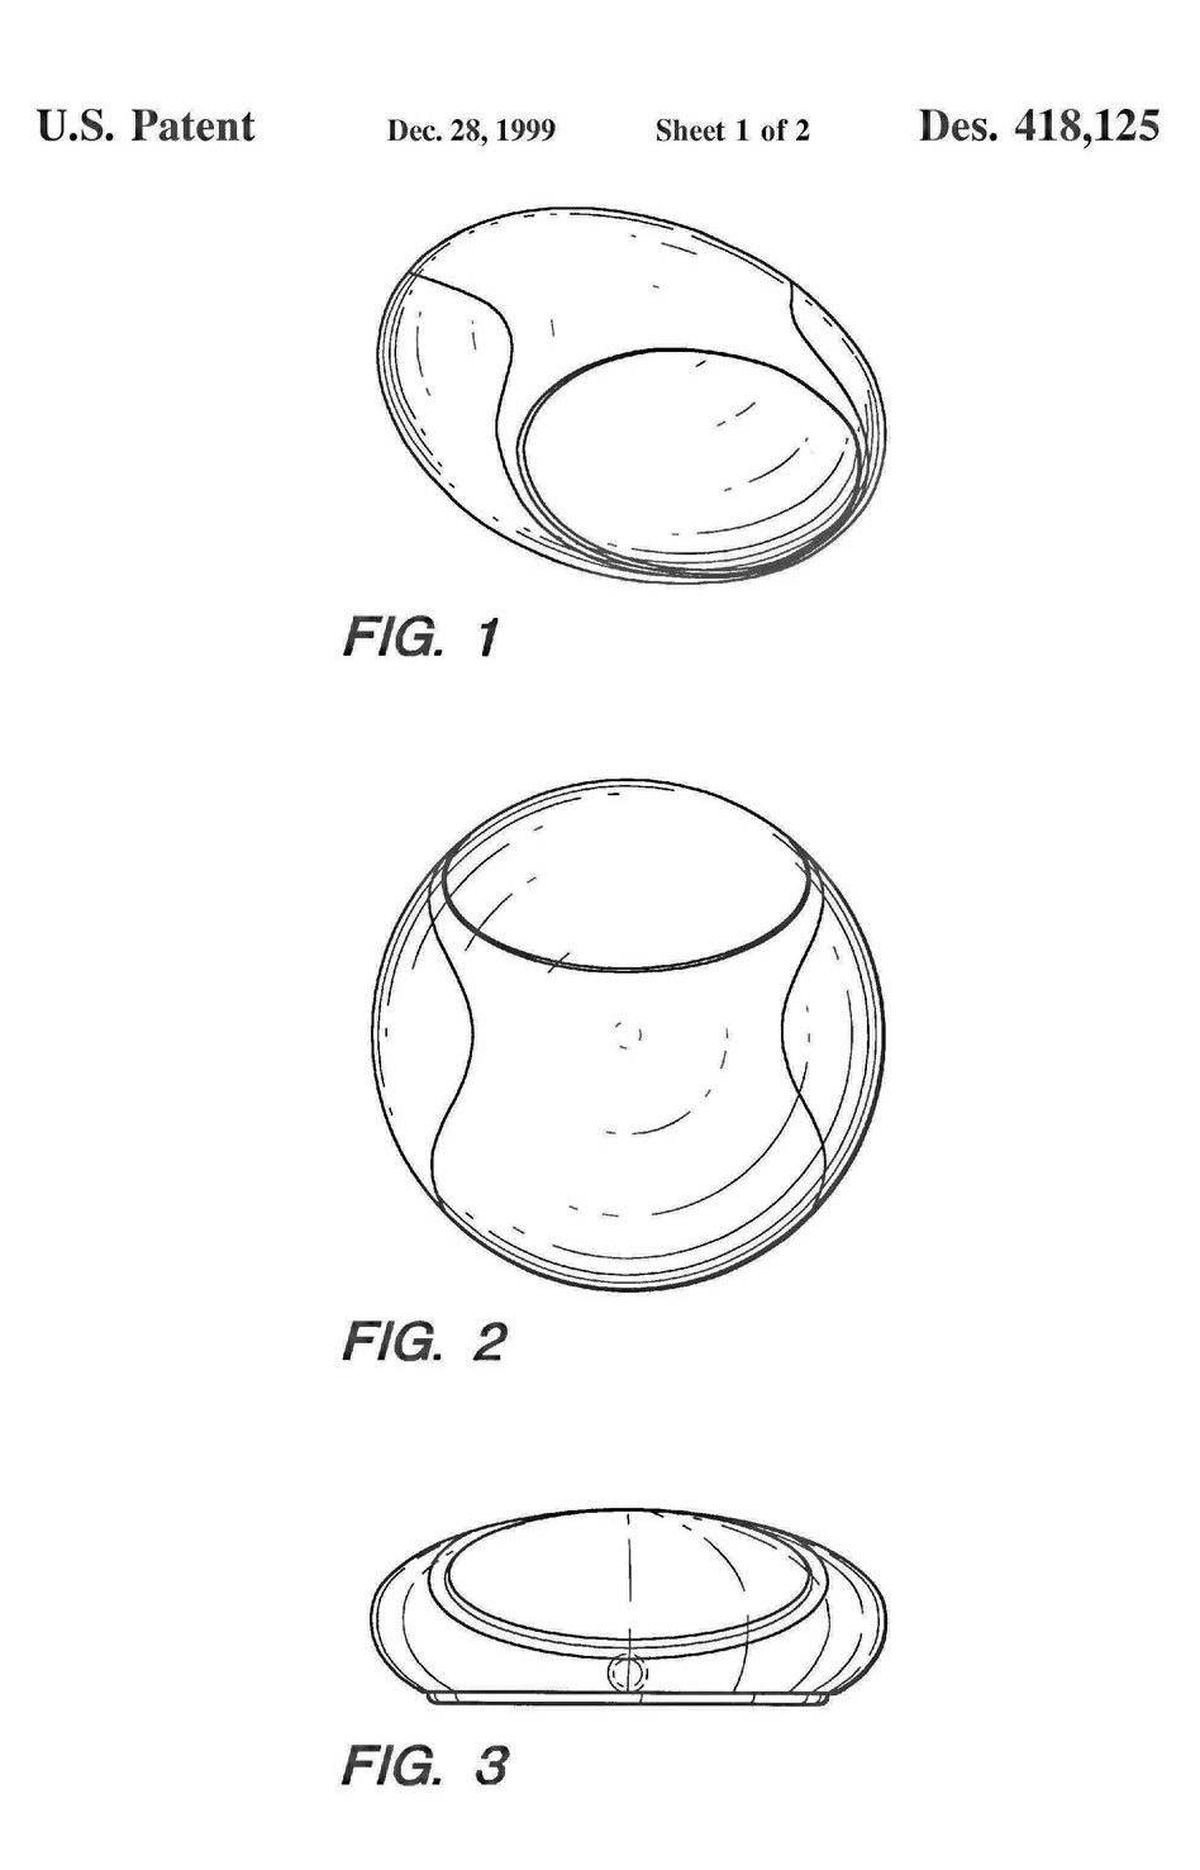 """The 1998 patent filing for a """"cursor control device"""" strongly resembles Apple's notorious hockey puck mouse that came with the early iMacs."""